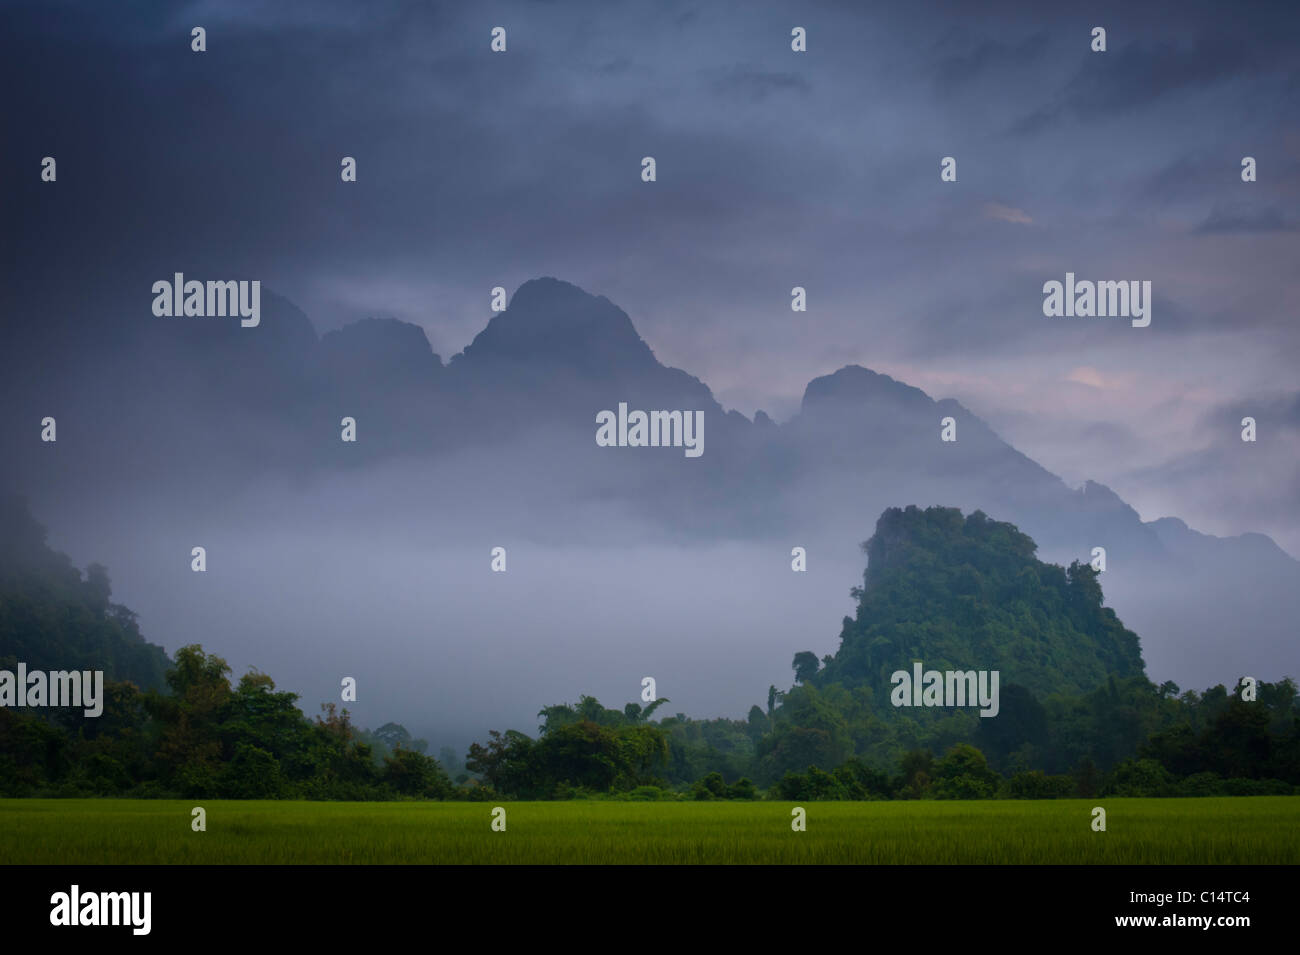 Rice paddies and mountains covered in vegetation in mist and clouds.  Vang Vieng, Laos, Asia. - Stock Image